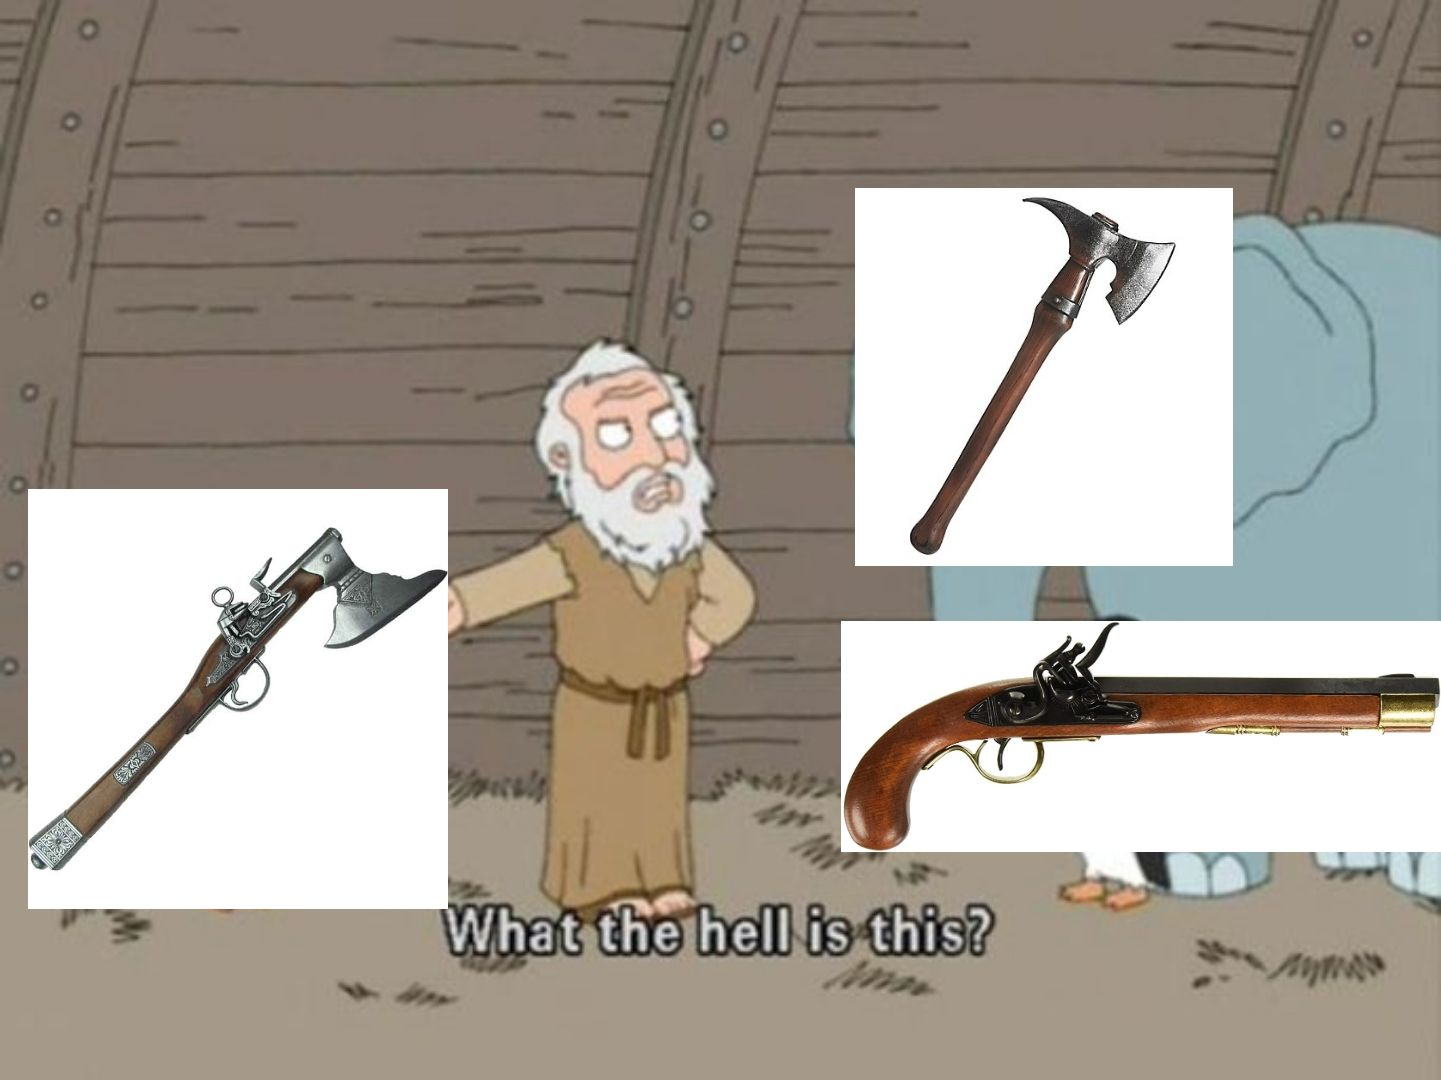 The glorious prussian axe pistol